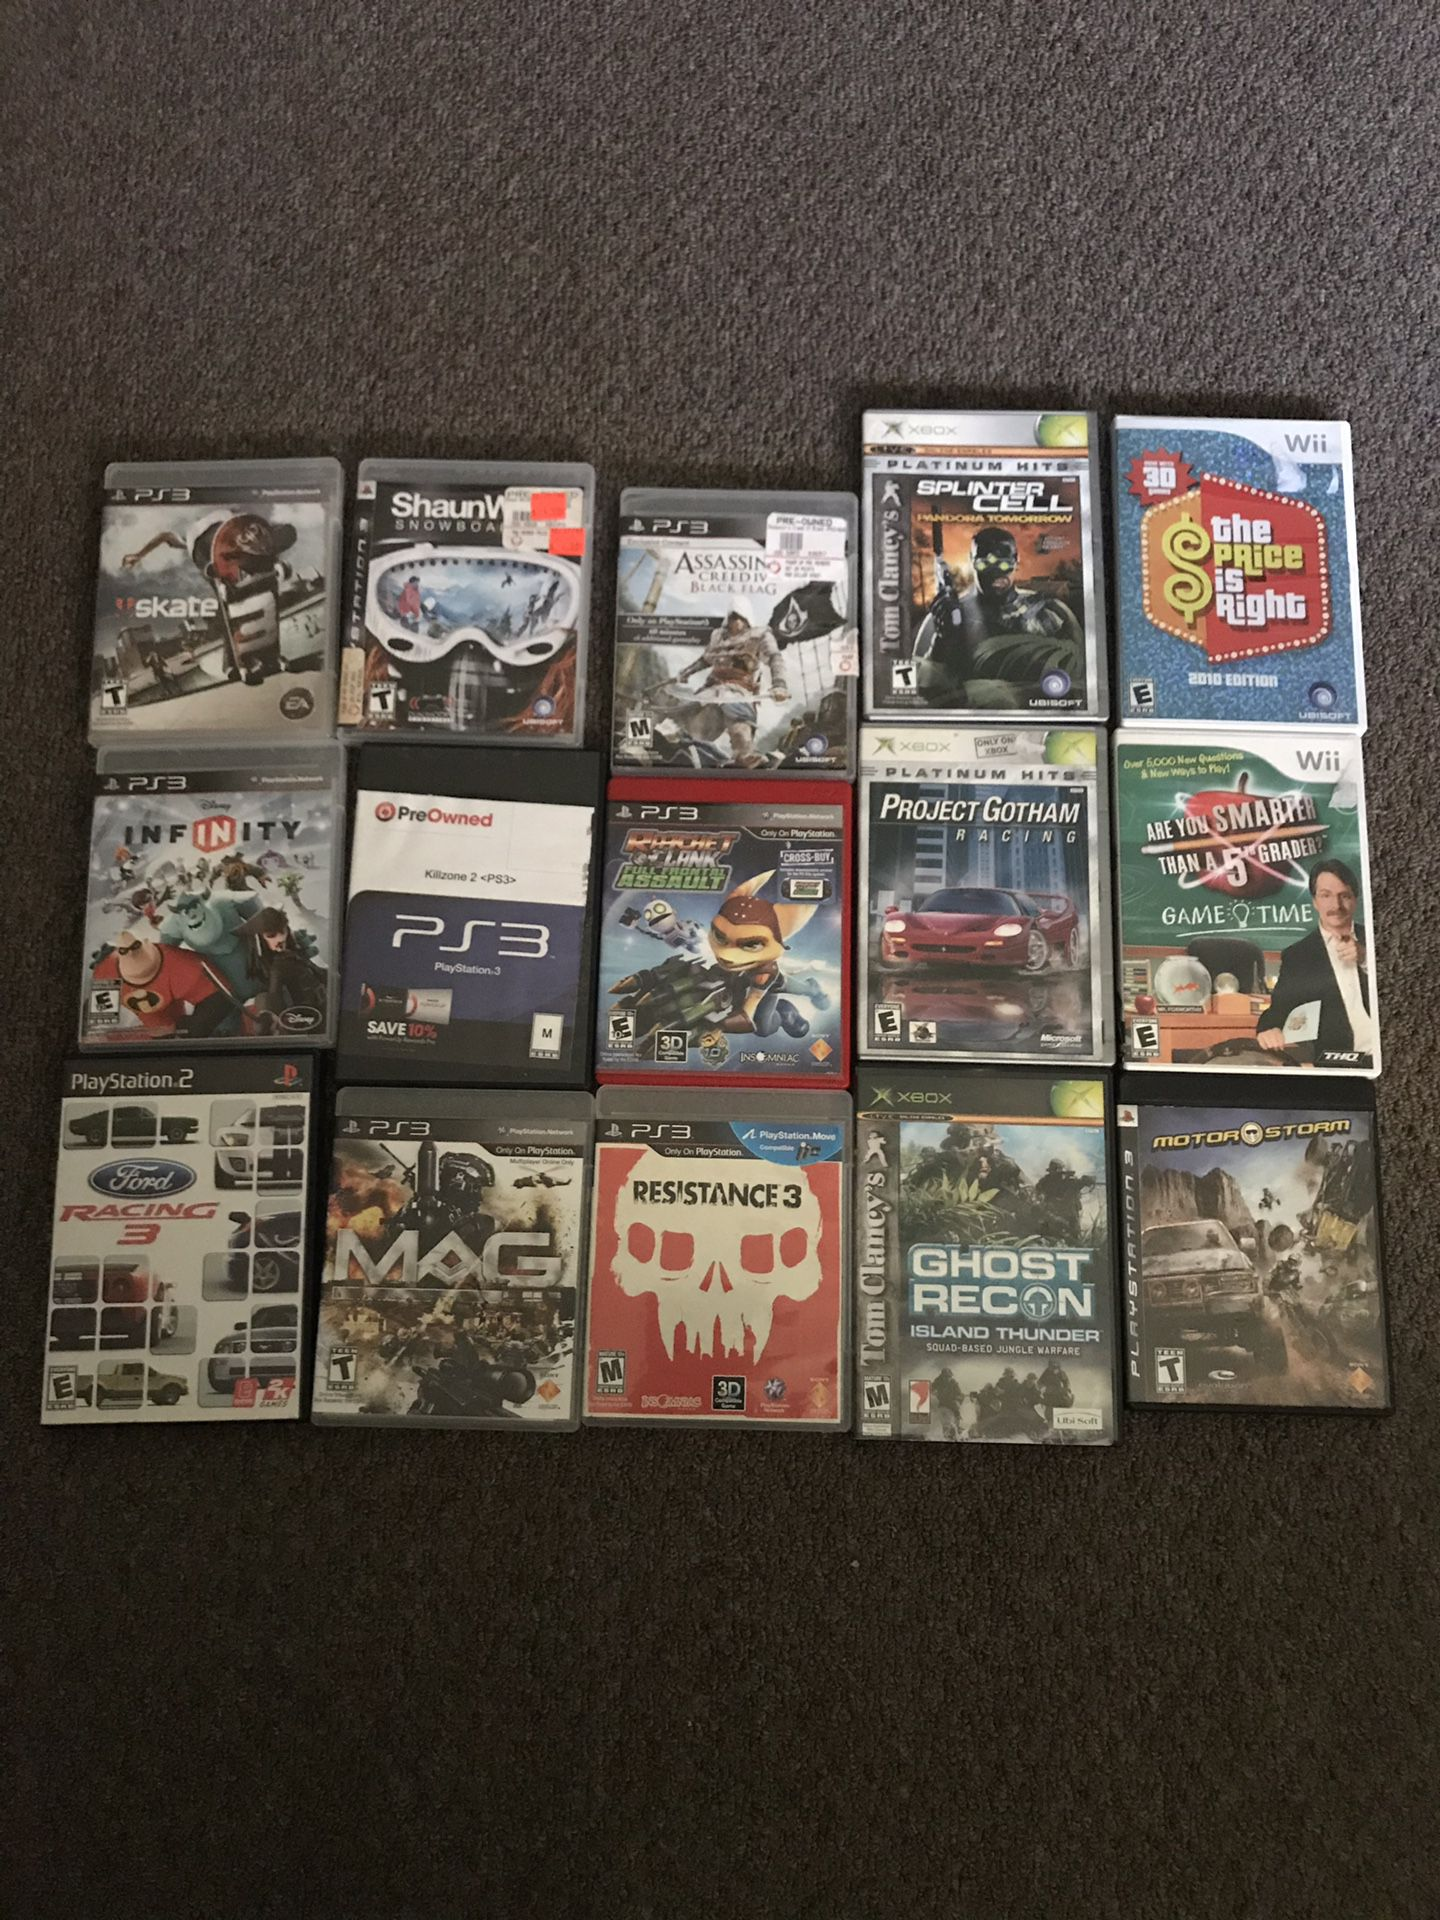 Ps2,PS3,wii and Xbox games